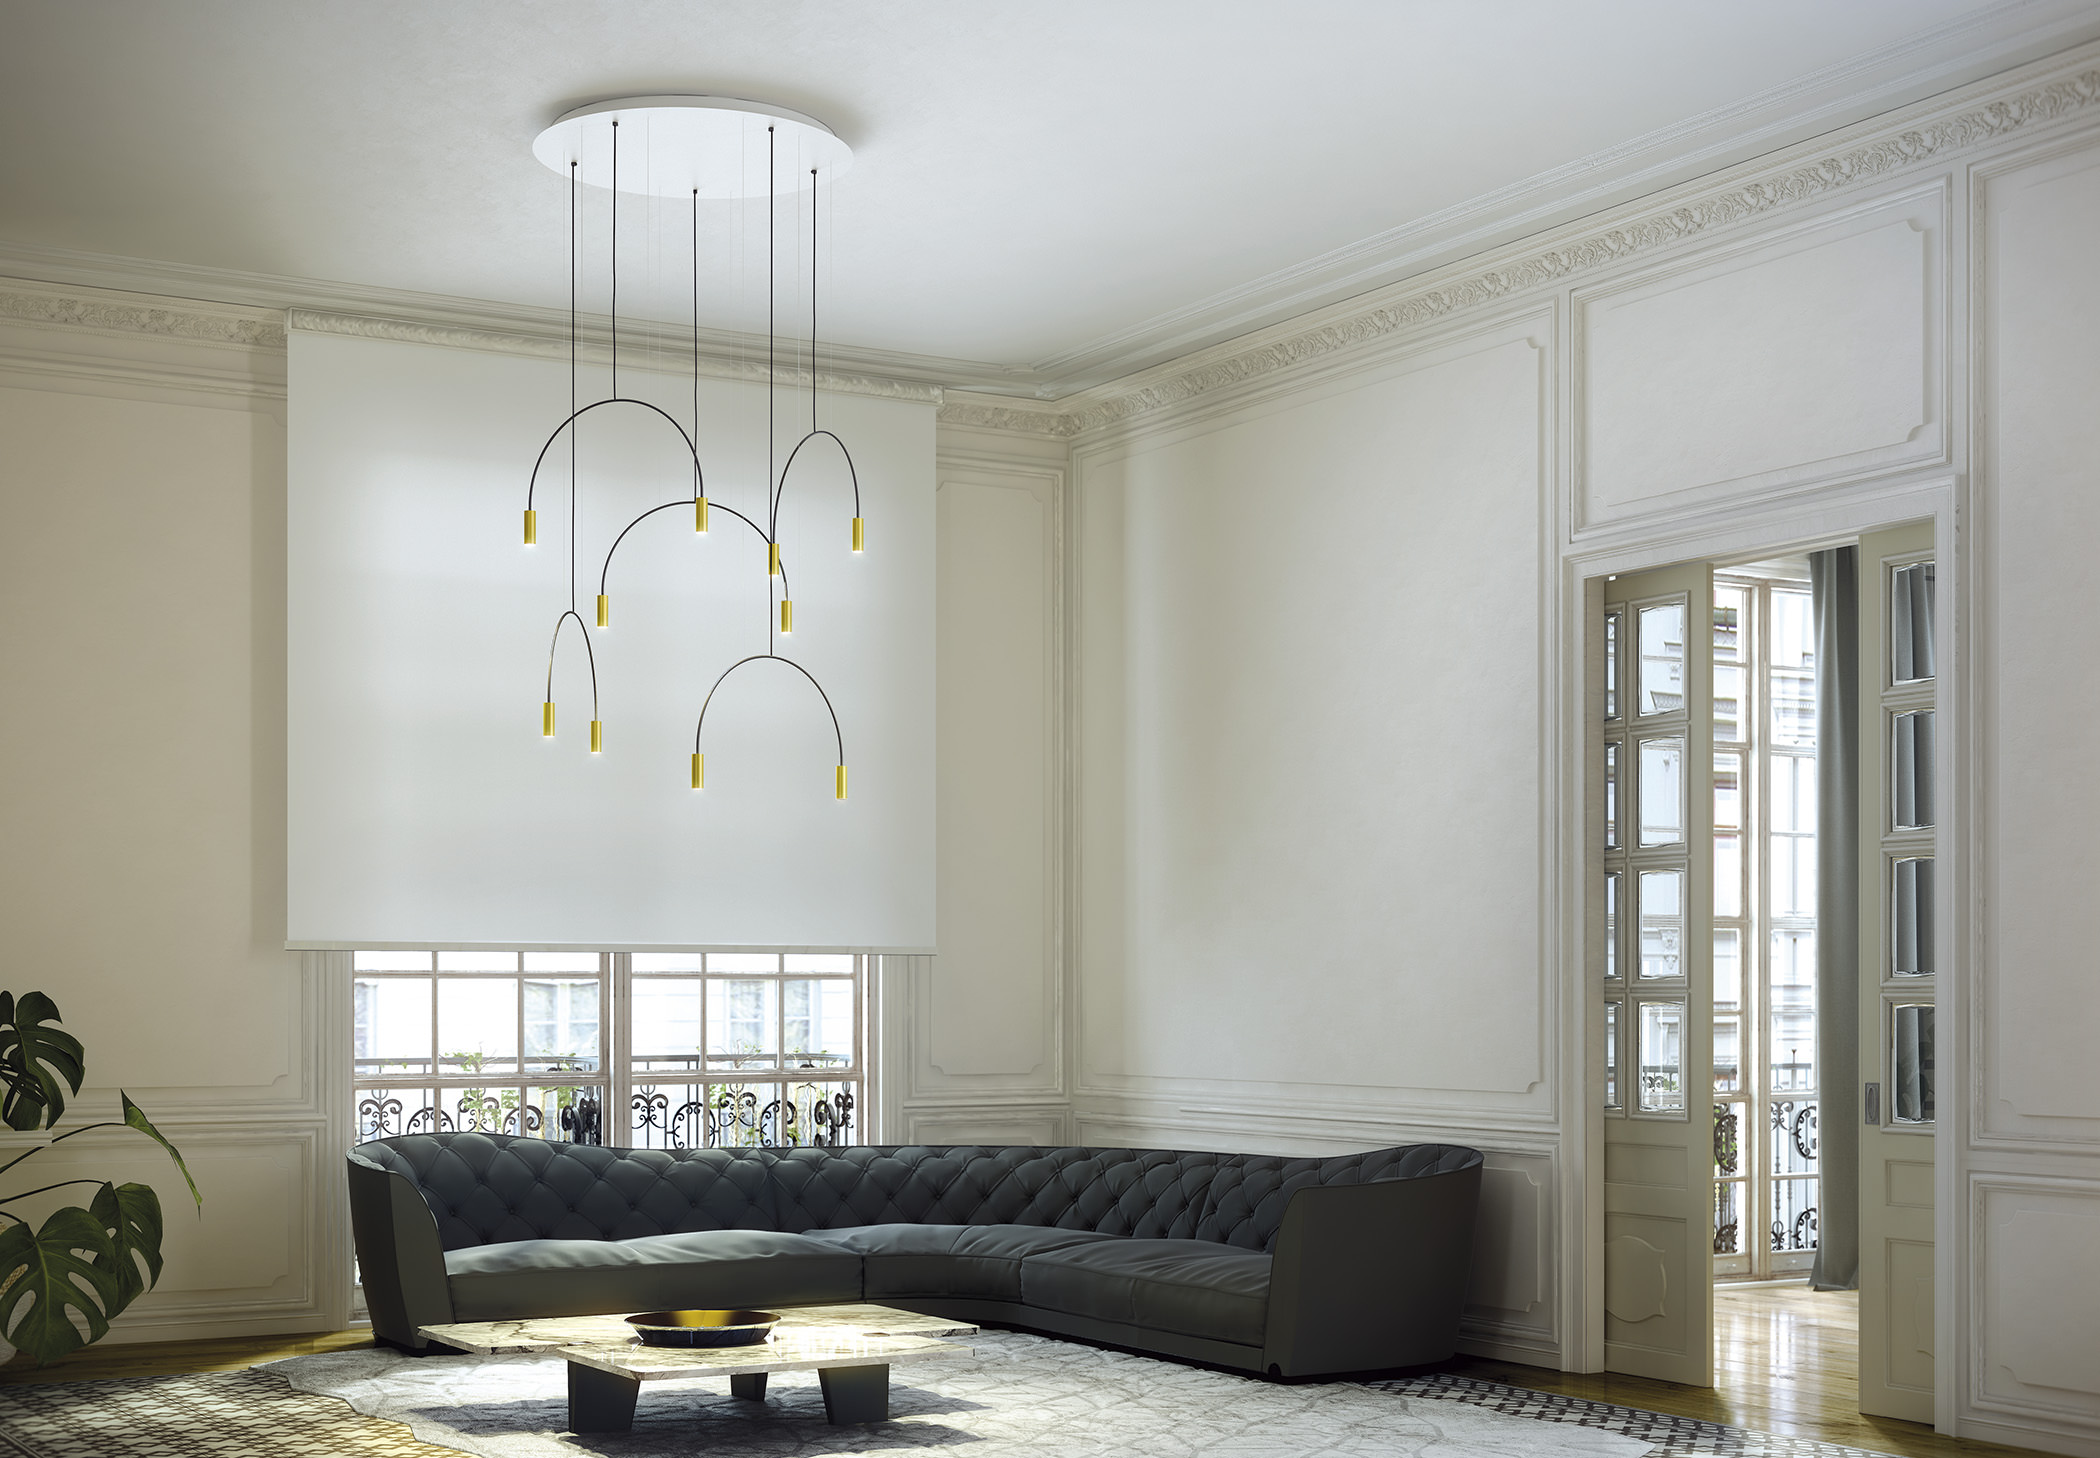 Volta R100.5d Suspension Lamp Estiluz Image Ambient 03